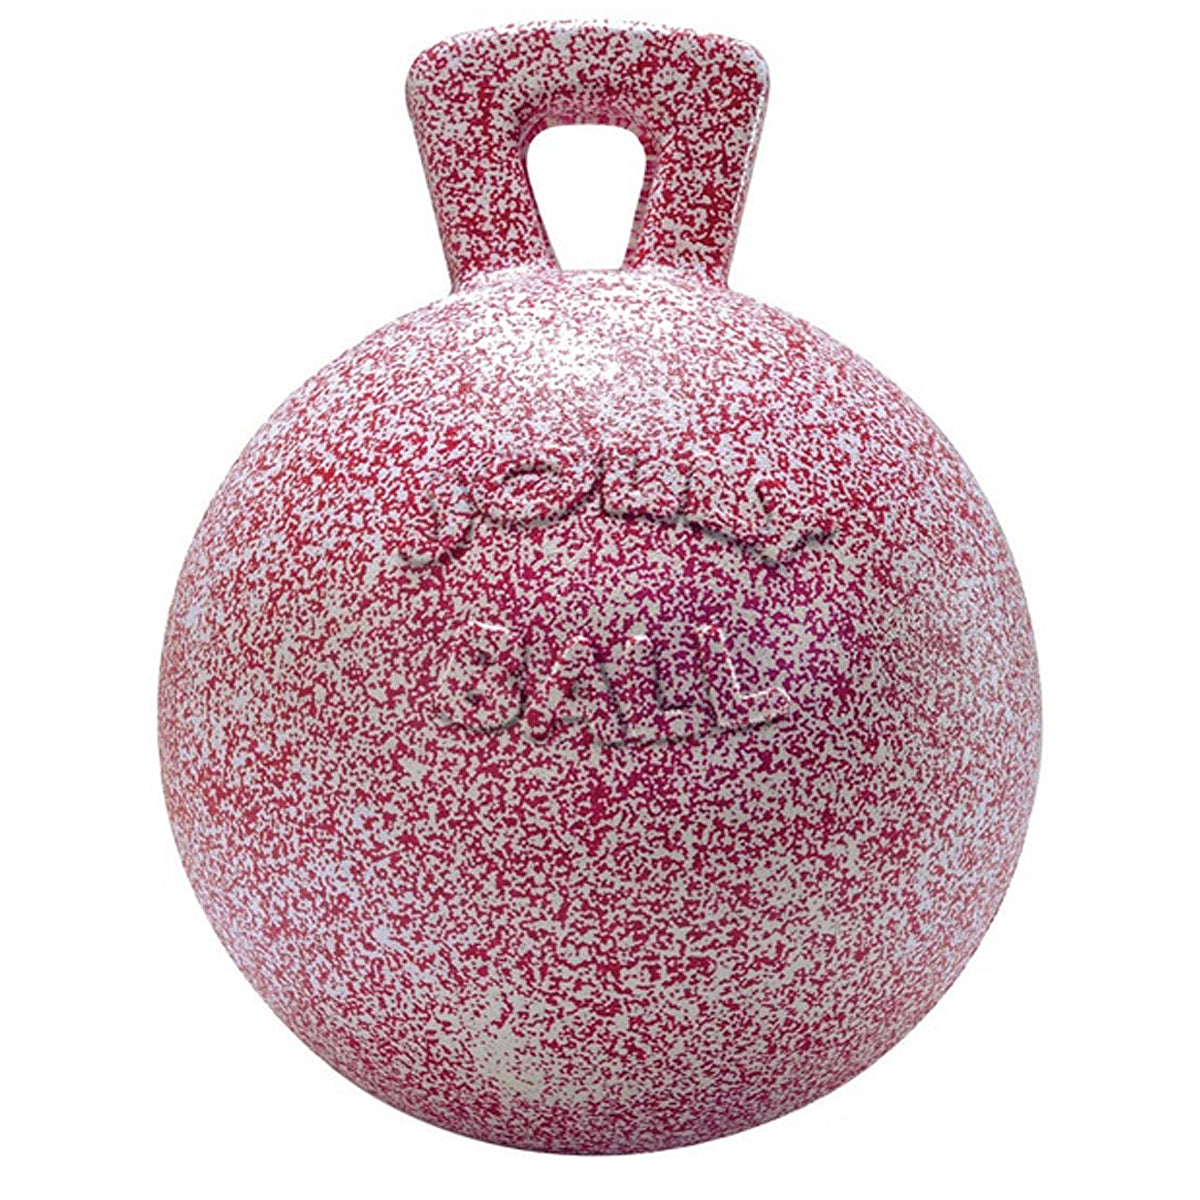 Jacks Jolly Ball with Handle Peppermint Scented 10""